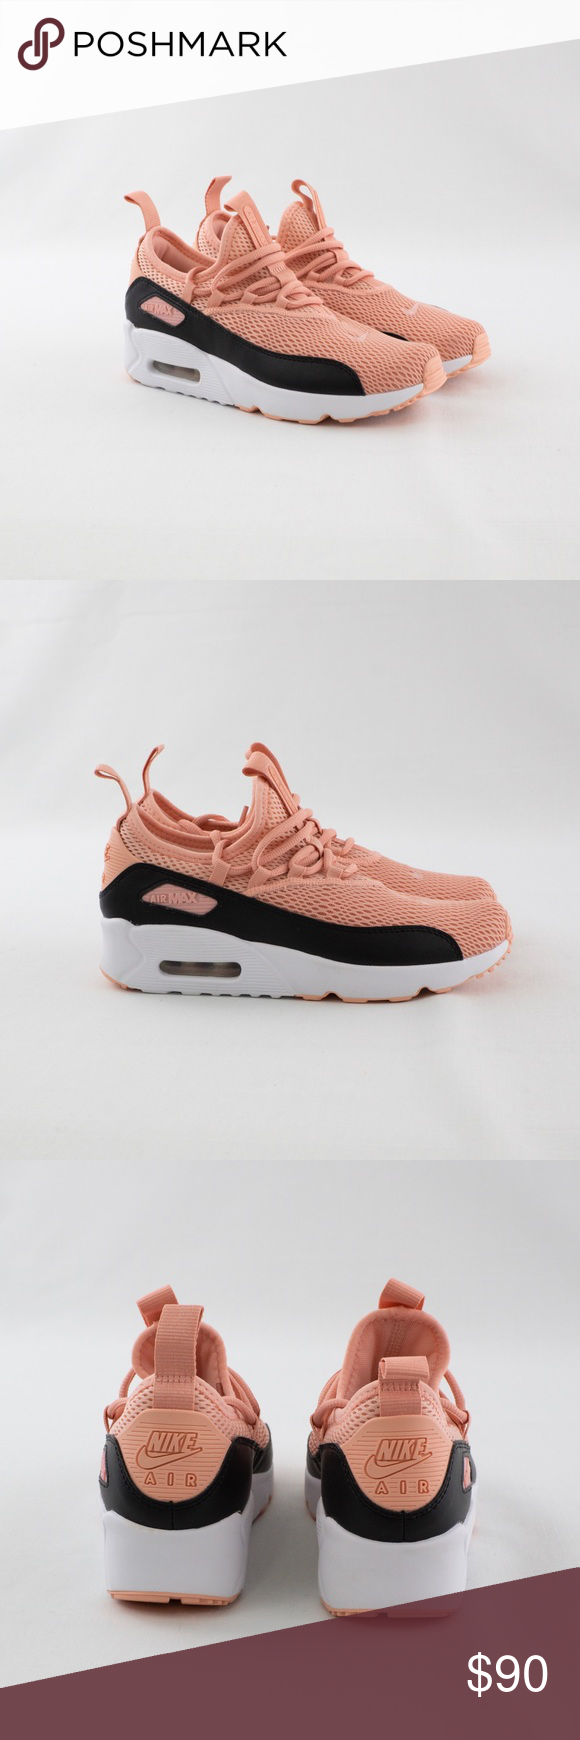 premium selection 0fa48 6bfff Nike Air Max 90 EZ GS Nike Air Max 90 EZ GS Kid s Size 5Y Women s